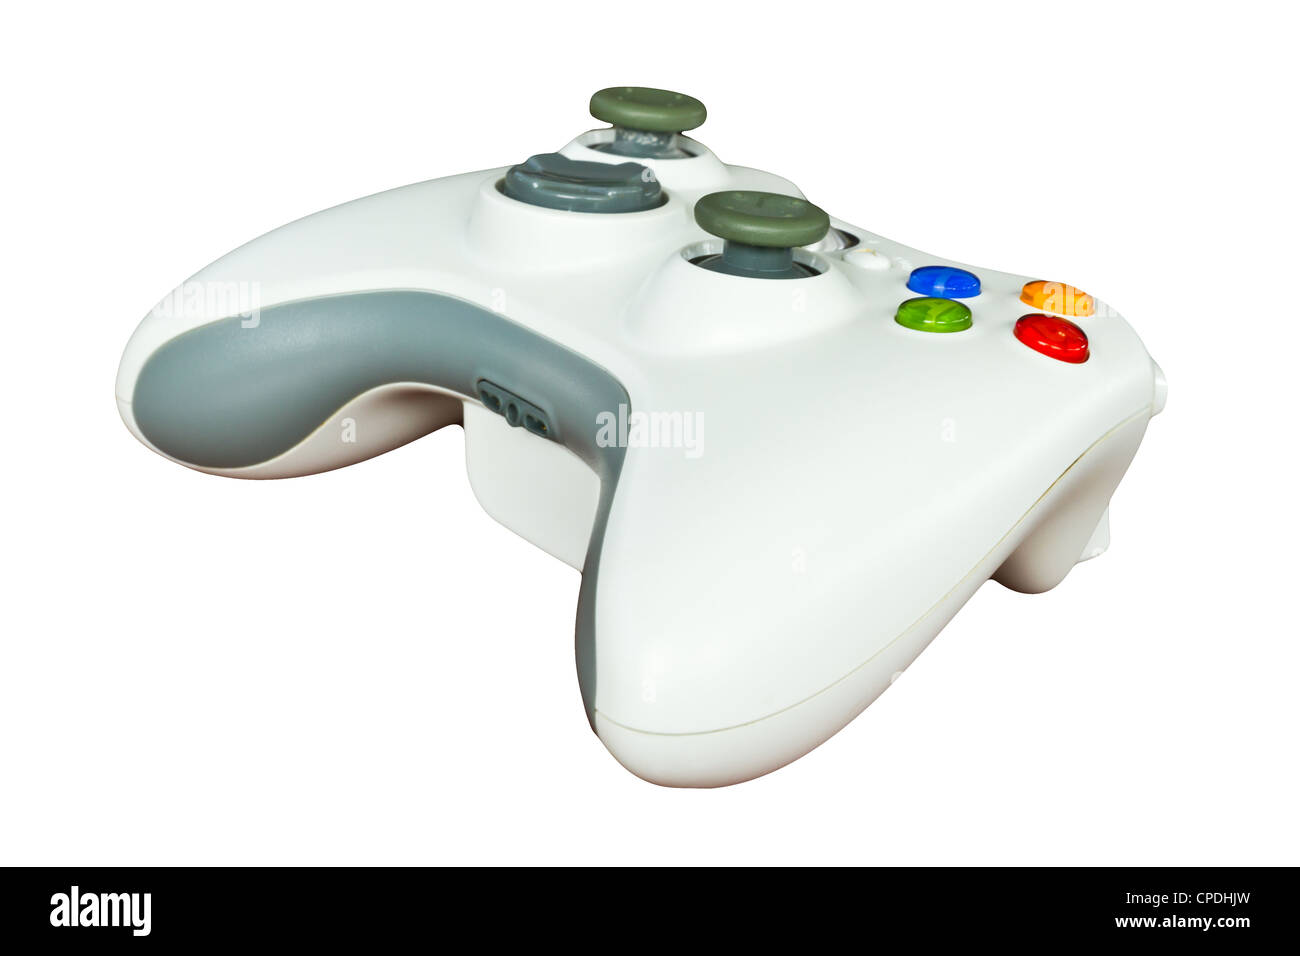 Game controller isolated on white background - Stock Image